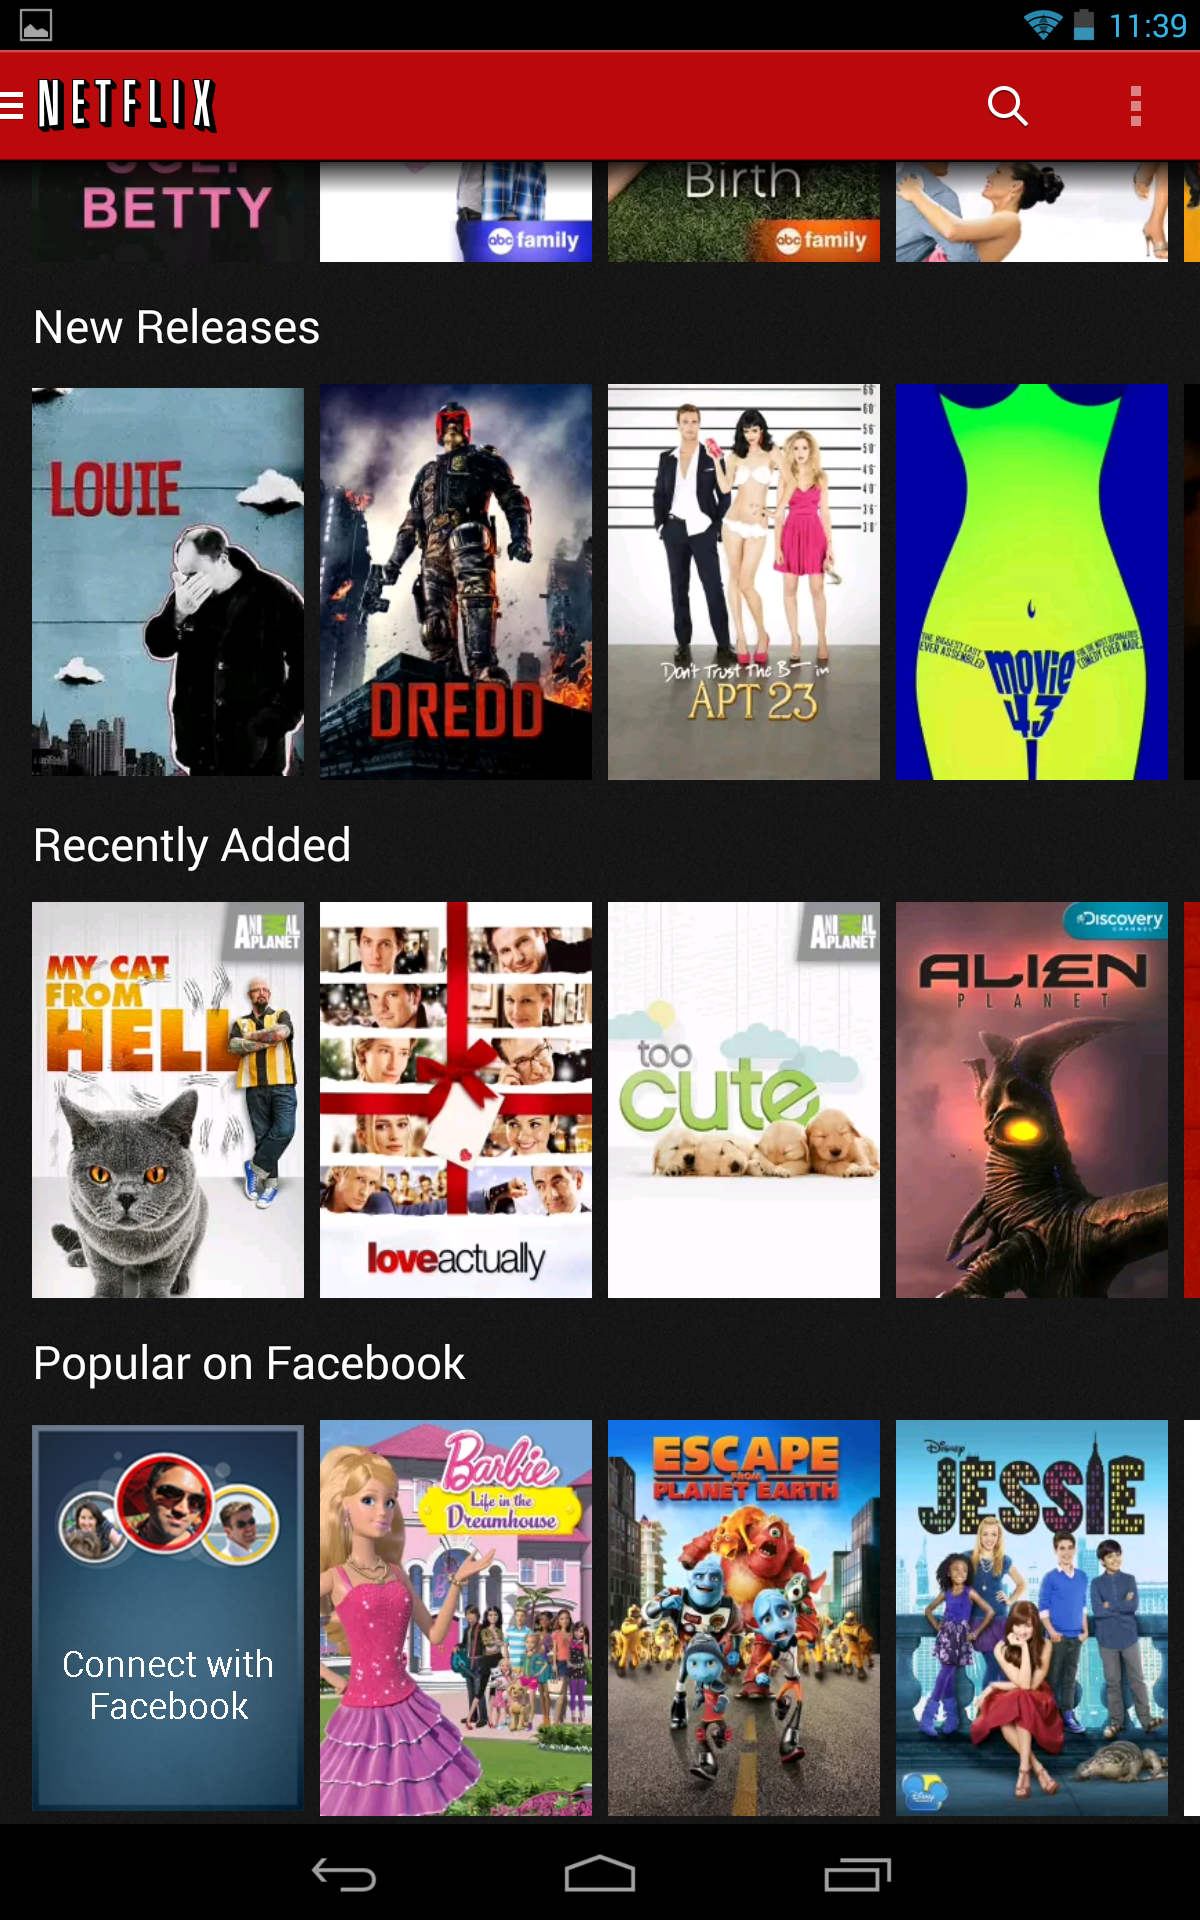 Netflix v3 0 For Android Begins A Slow Rollout – Complete Redesign